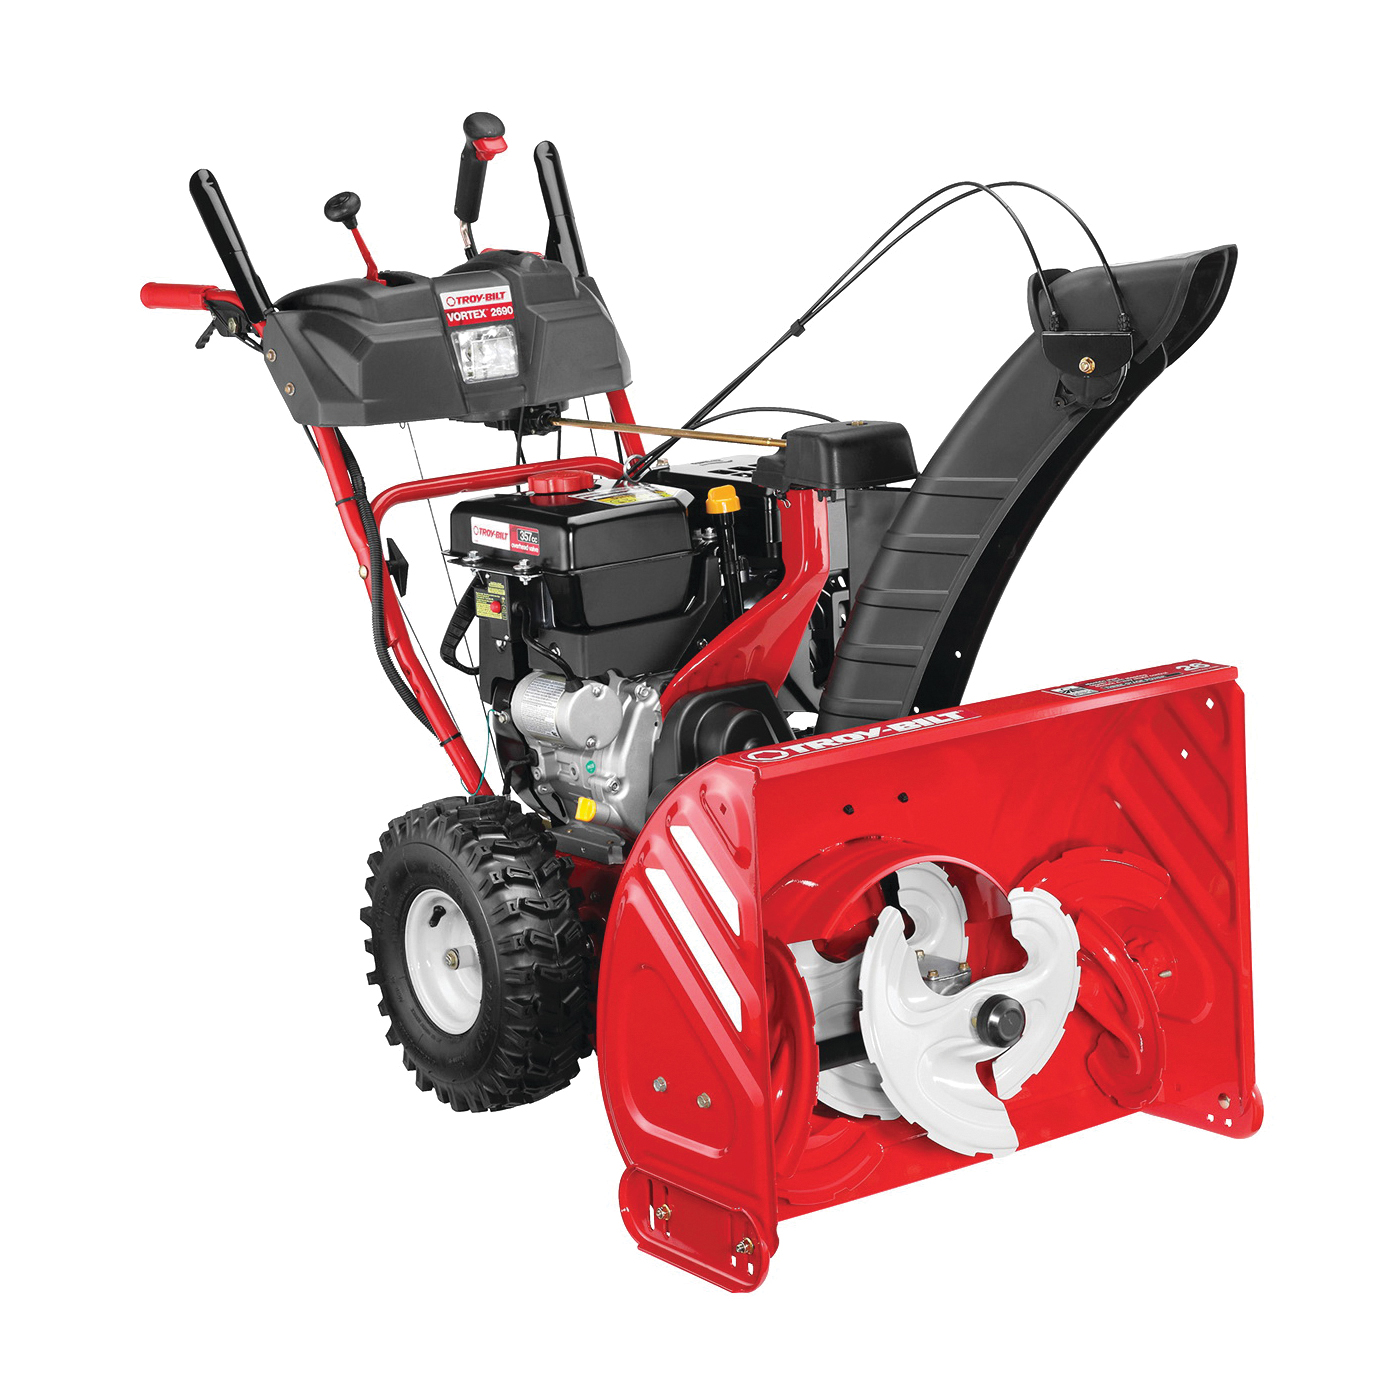 Picture of MTD 31AH54Q6766 Snow Blower, Gasoline, 277 cc Engine Displacement, OHV Engine, 3 -Stage, Electric, Recoil Start